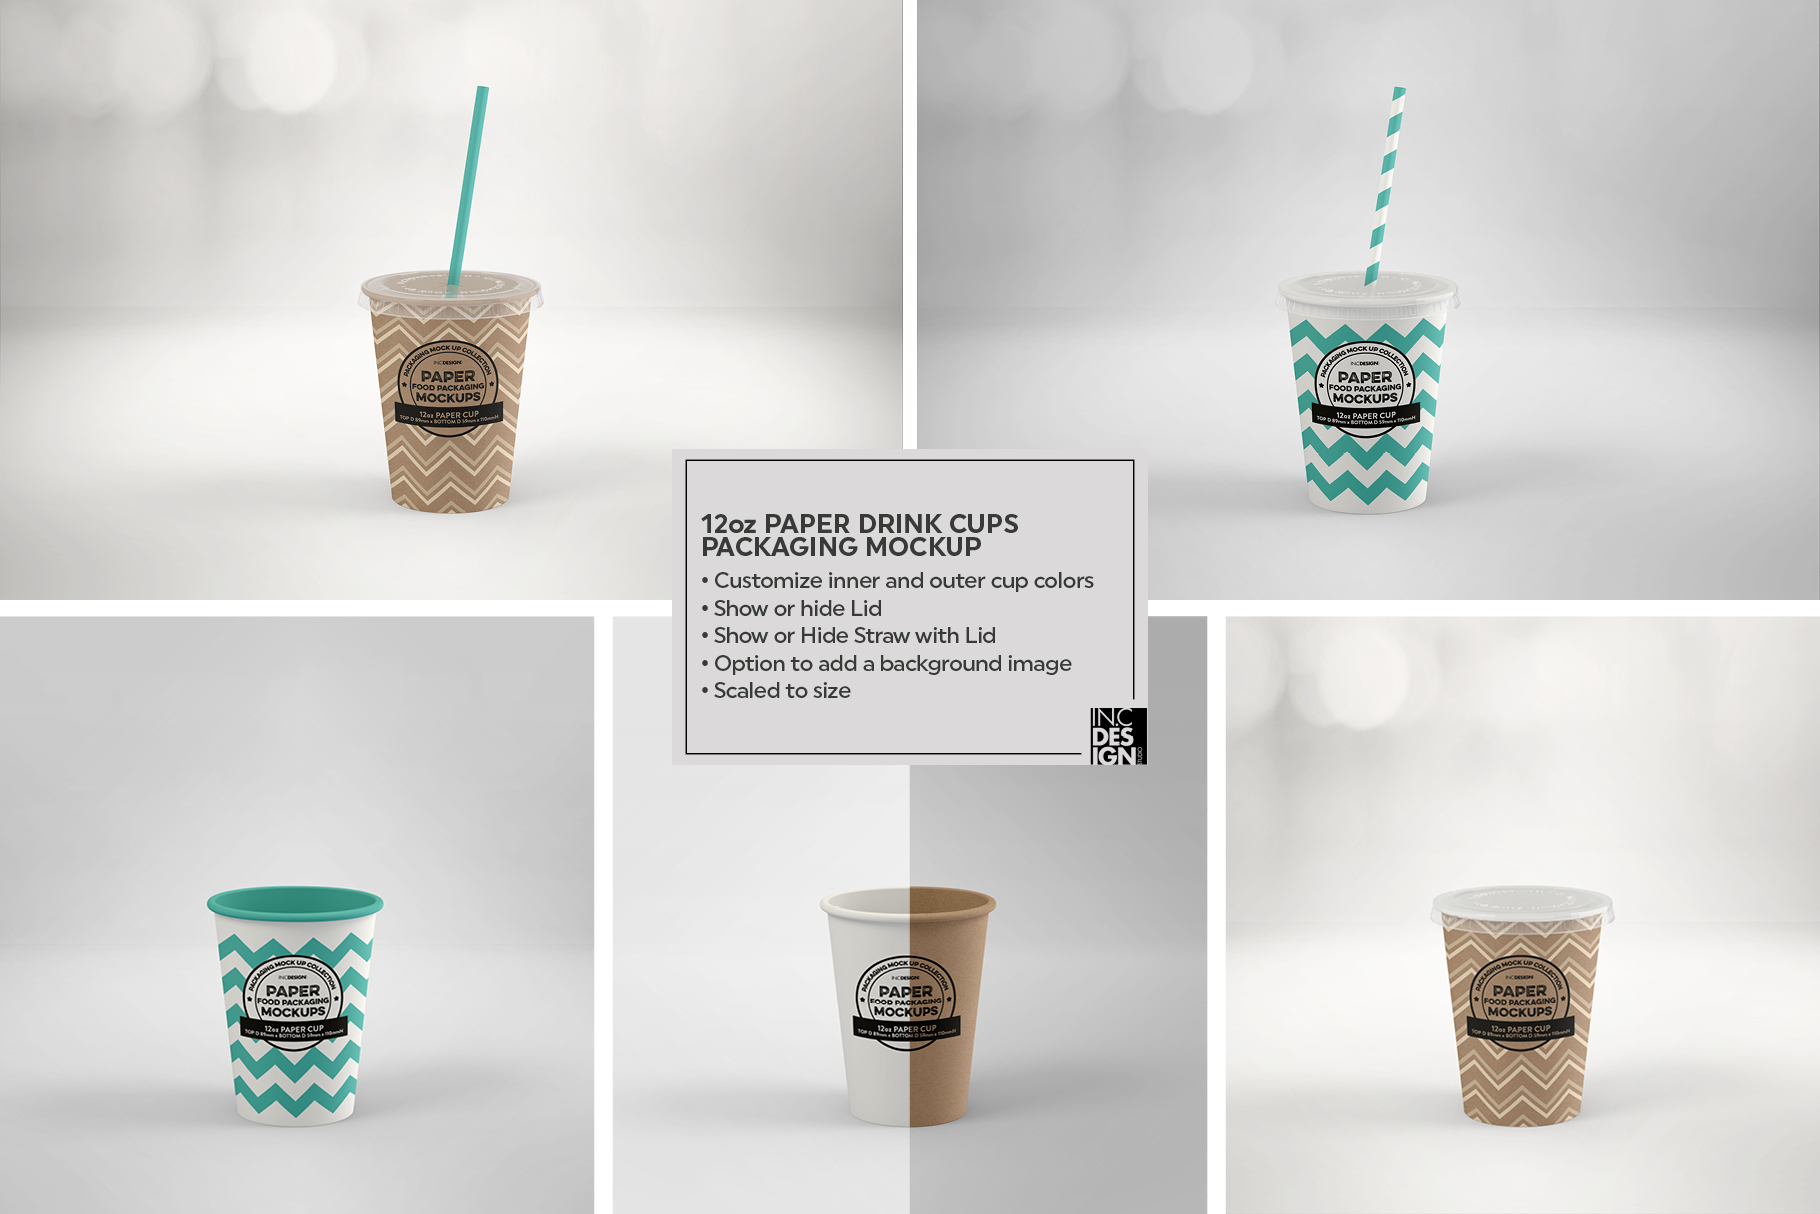 Paper Drink Cups Packaging Mockup example image 10